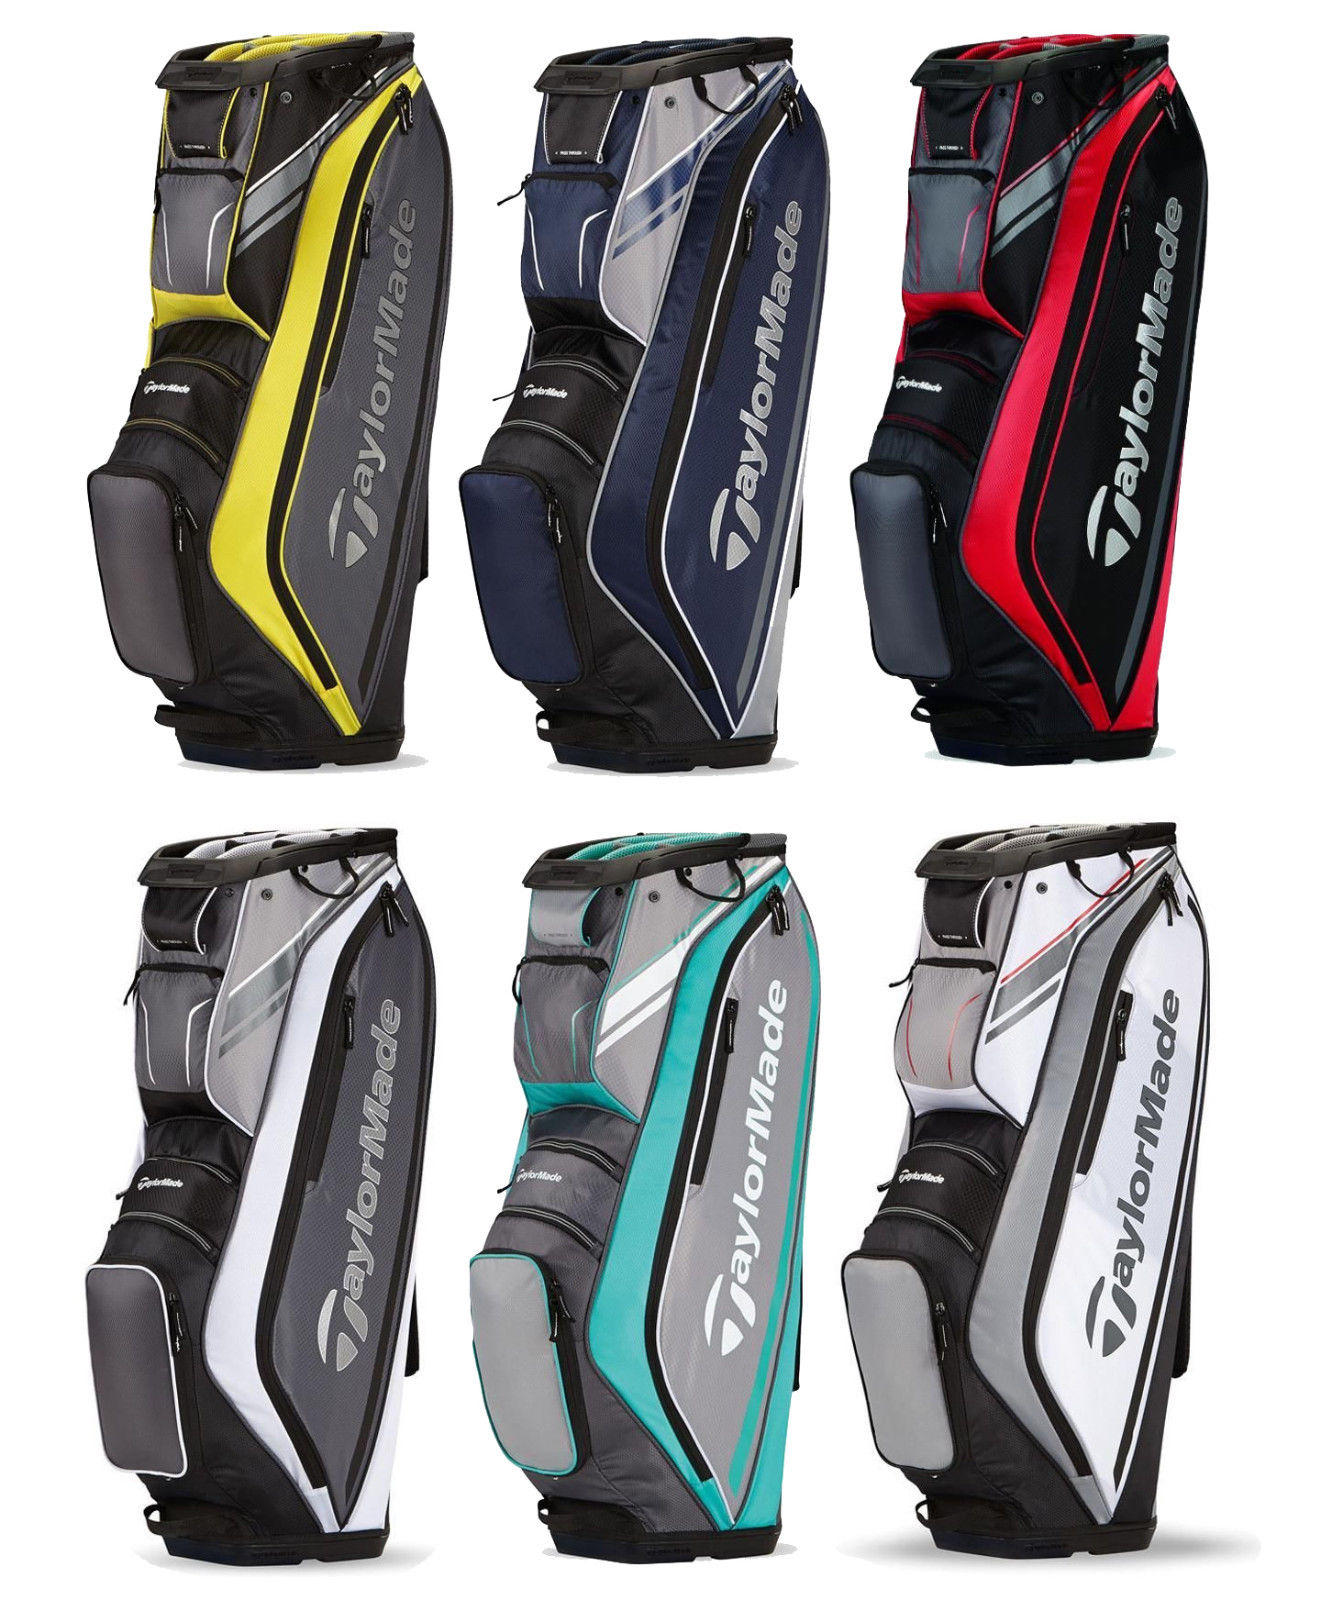 TaylorMade San Clemente Cart Bag - Golf Cart Bag - 6 Color Options - 2015 Model